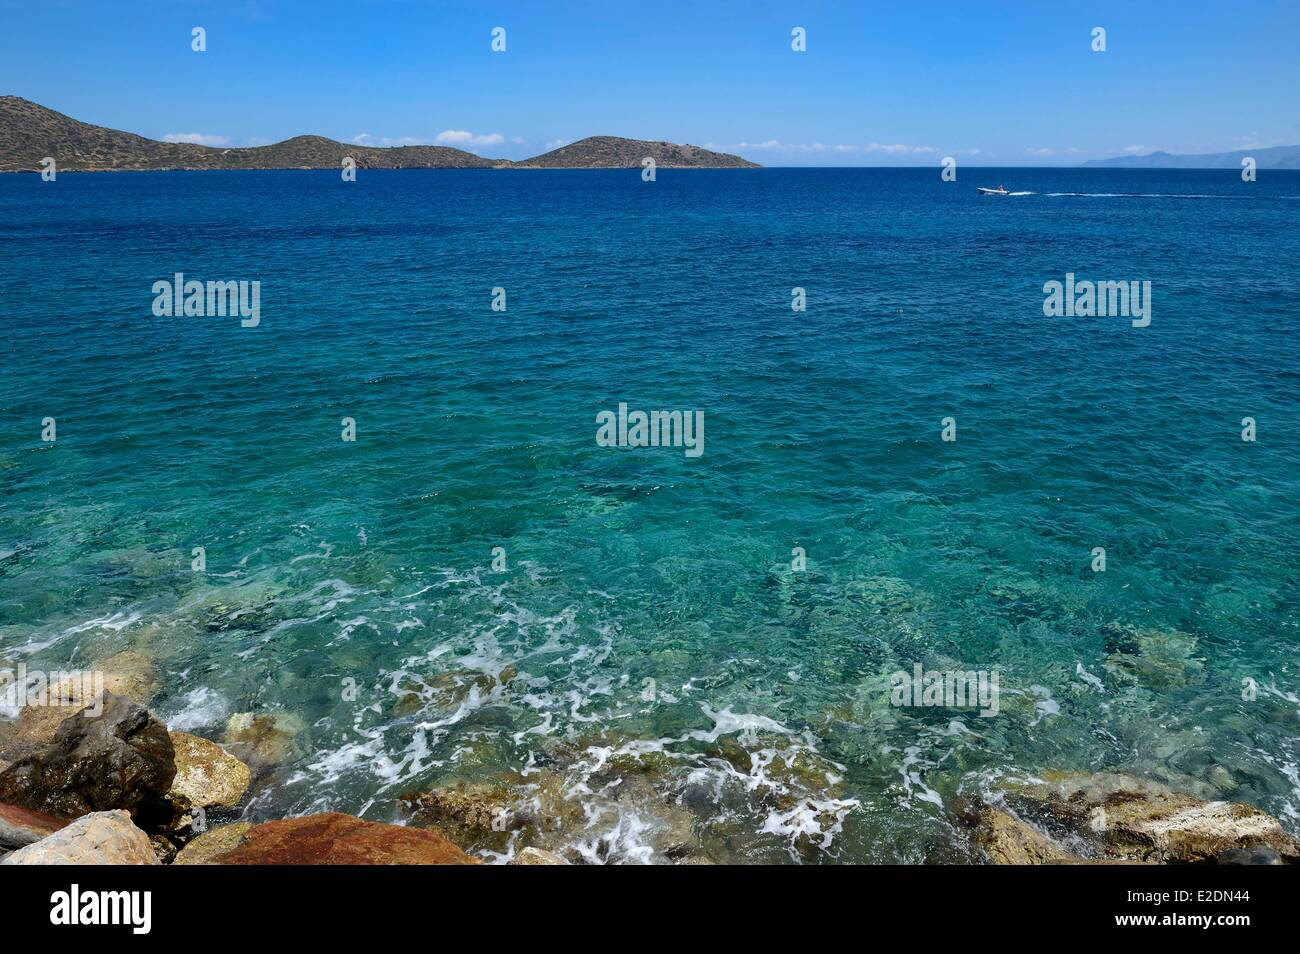 Greece Crete Agios Nikolaos region Elounda coast Stock Photo